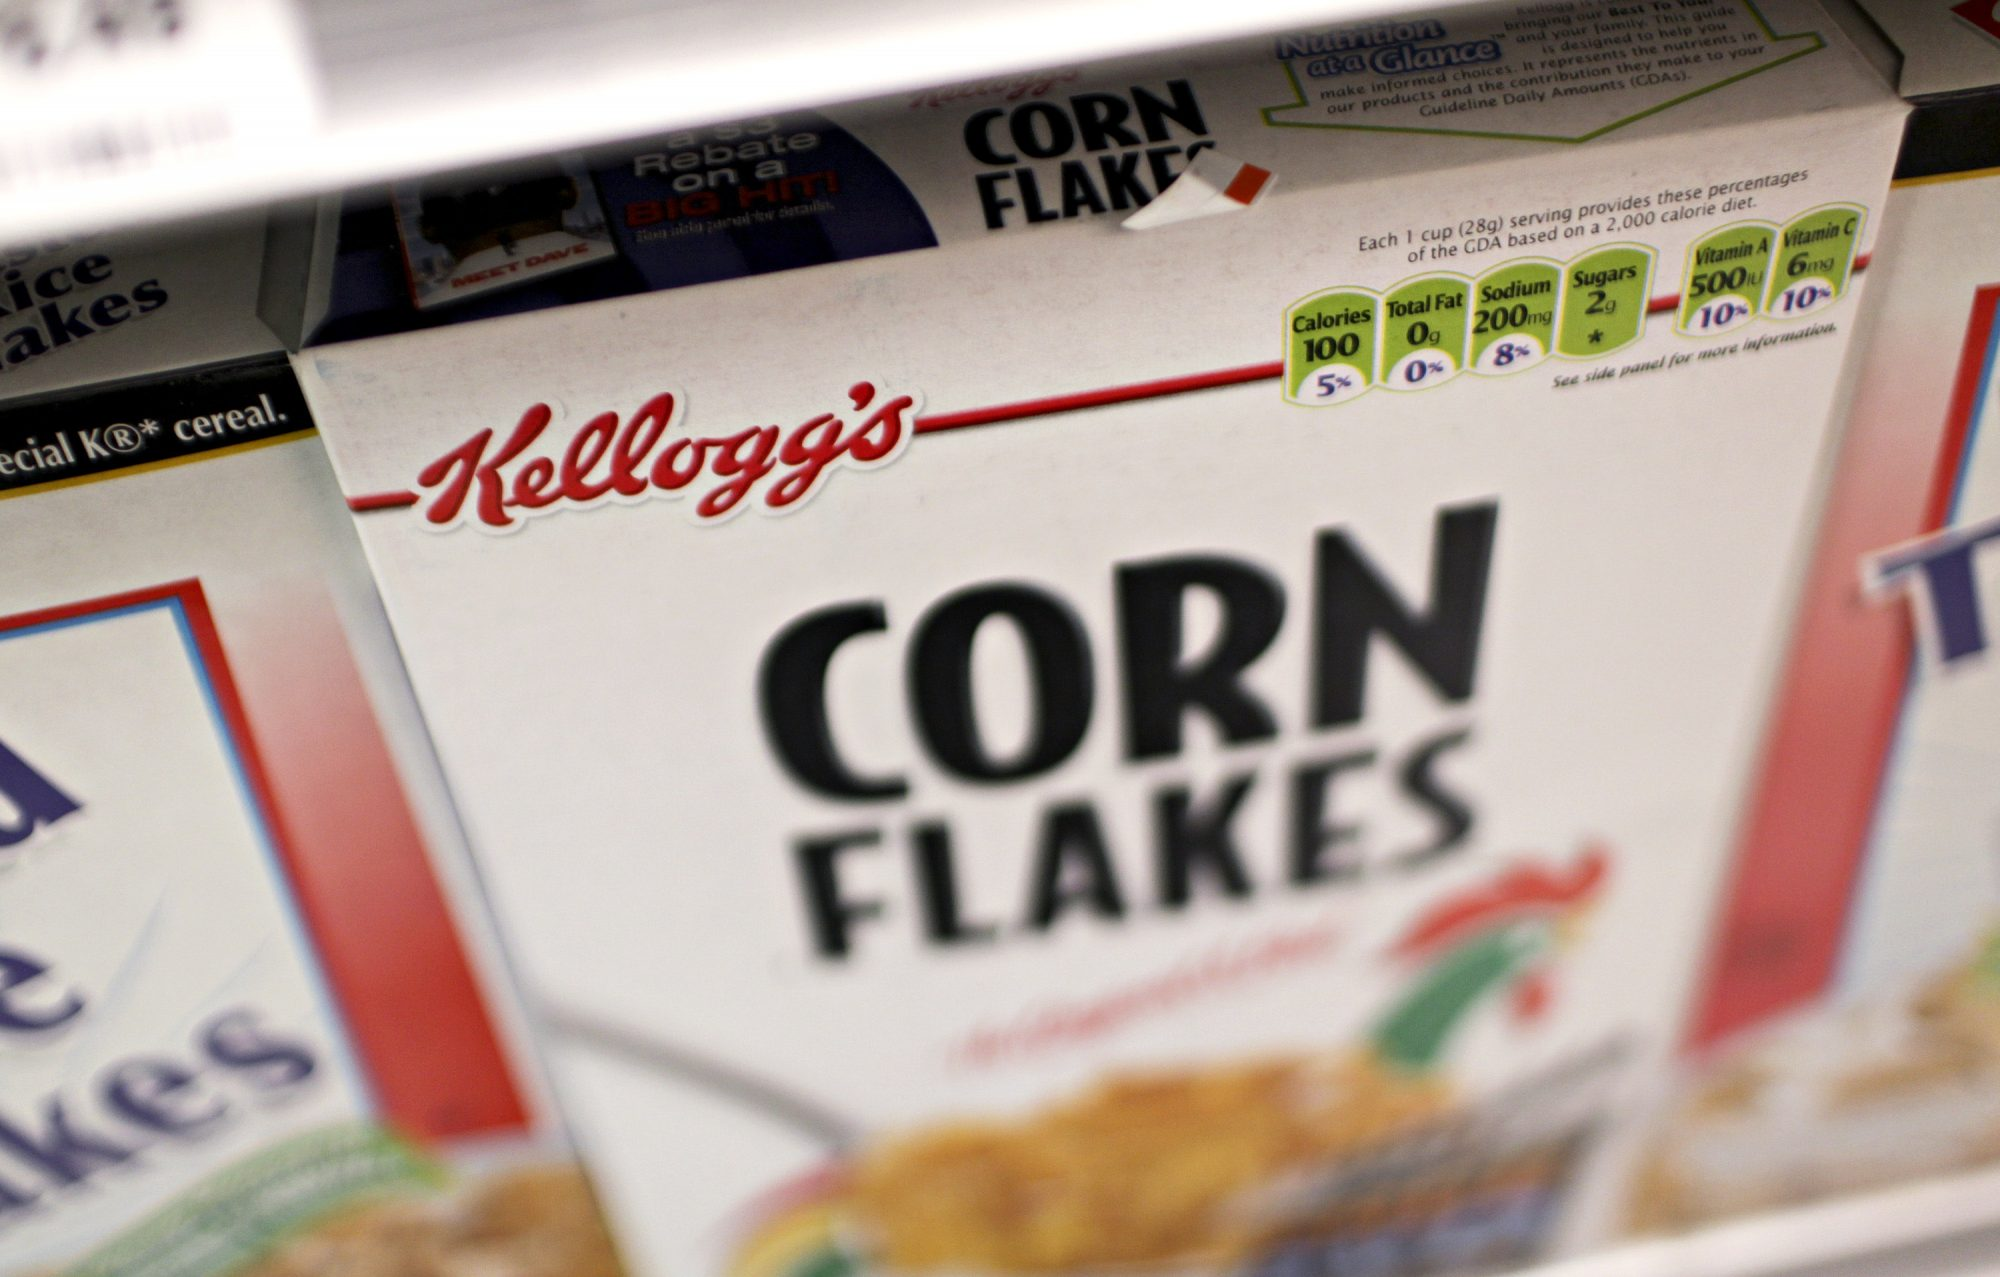 Dear Kellogg's, Cereal Doesn't Belong on Avocados (Plus 5 Ways to Use Corn Flakes That Actually Make Sense)